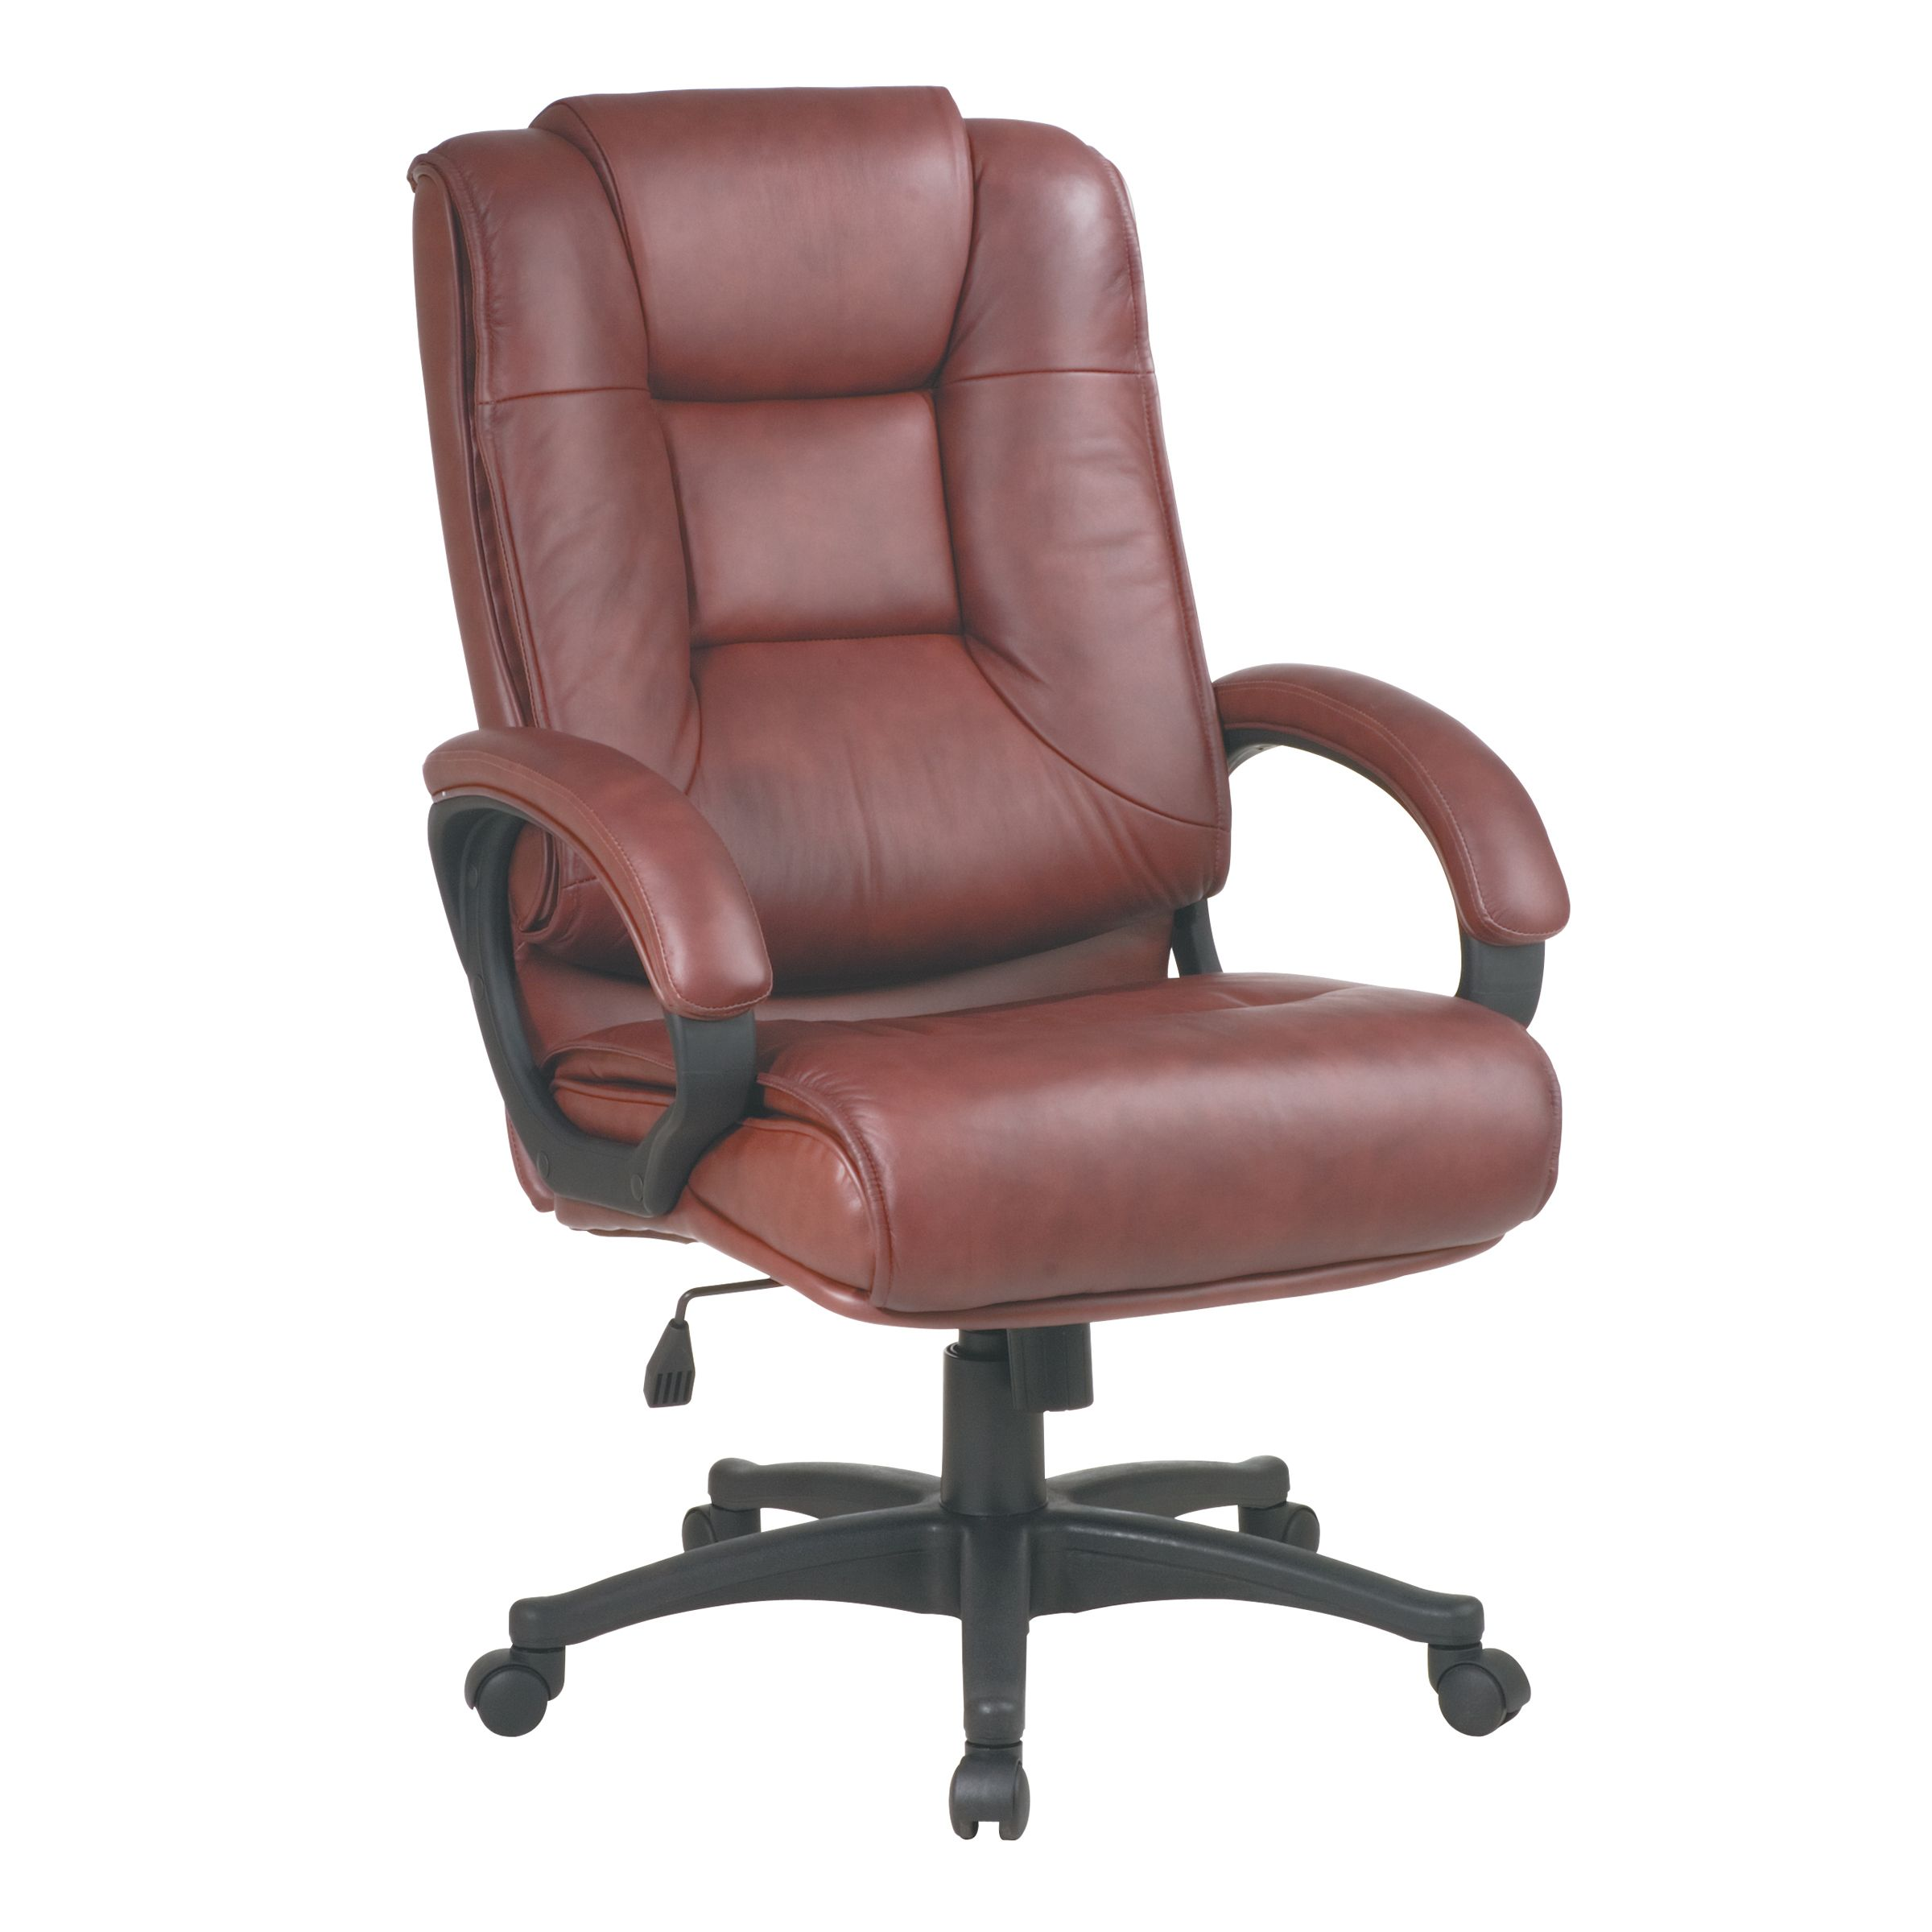 kmart desk chair pink princess leather office